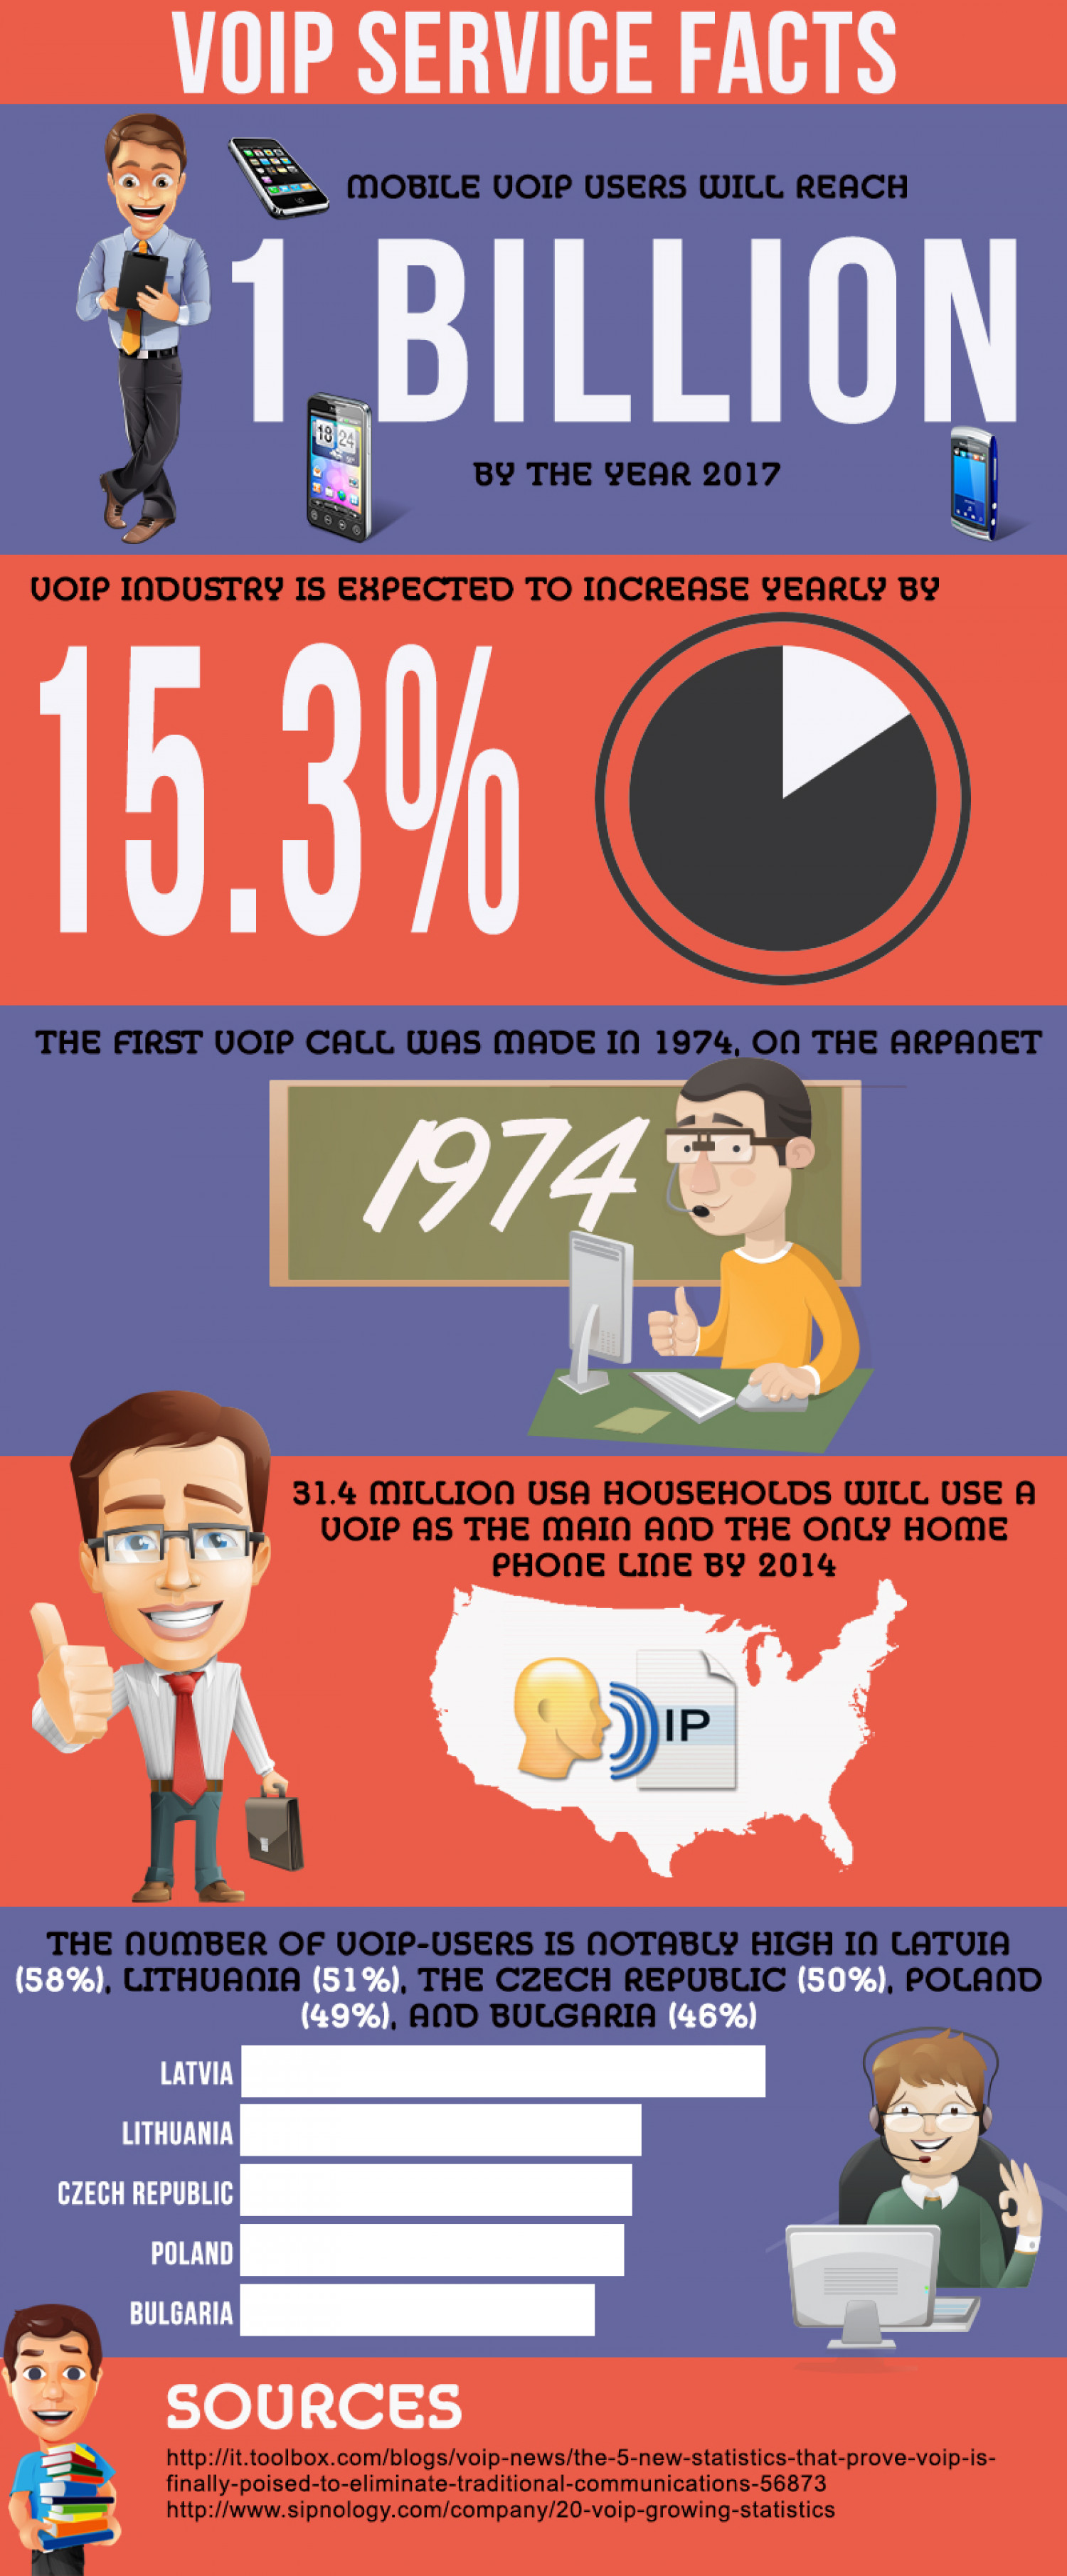 Users of Mobile VOIP Will Reach 1 Billion Infographic